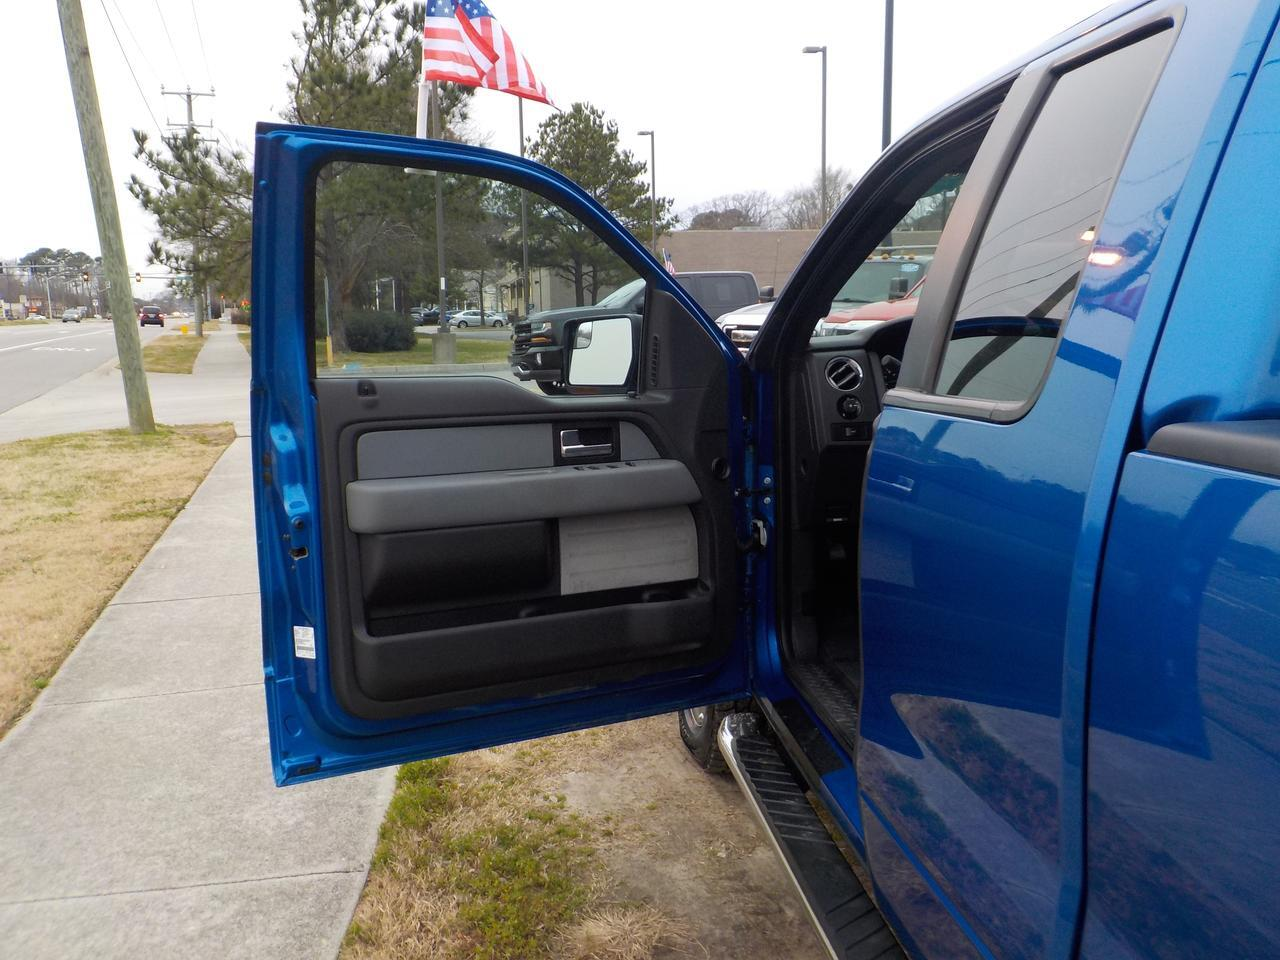 2013 FORD F-150 SUPERCAB XLT 4X4, BLUETOOTH WIRELESS, TOW PACKAGE, SYNC, VERY CLEAN, WELL MAINTAINED! Virginia Beach VA